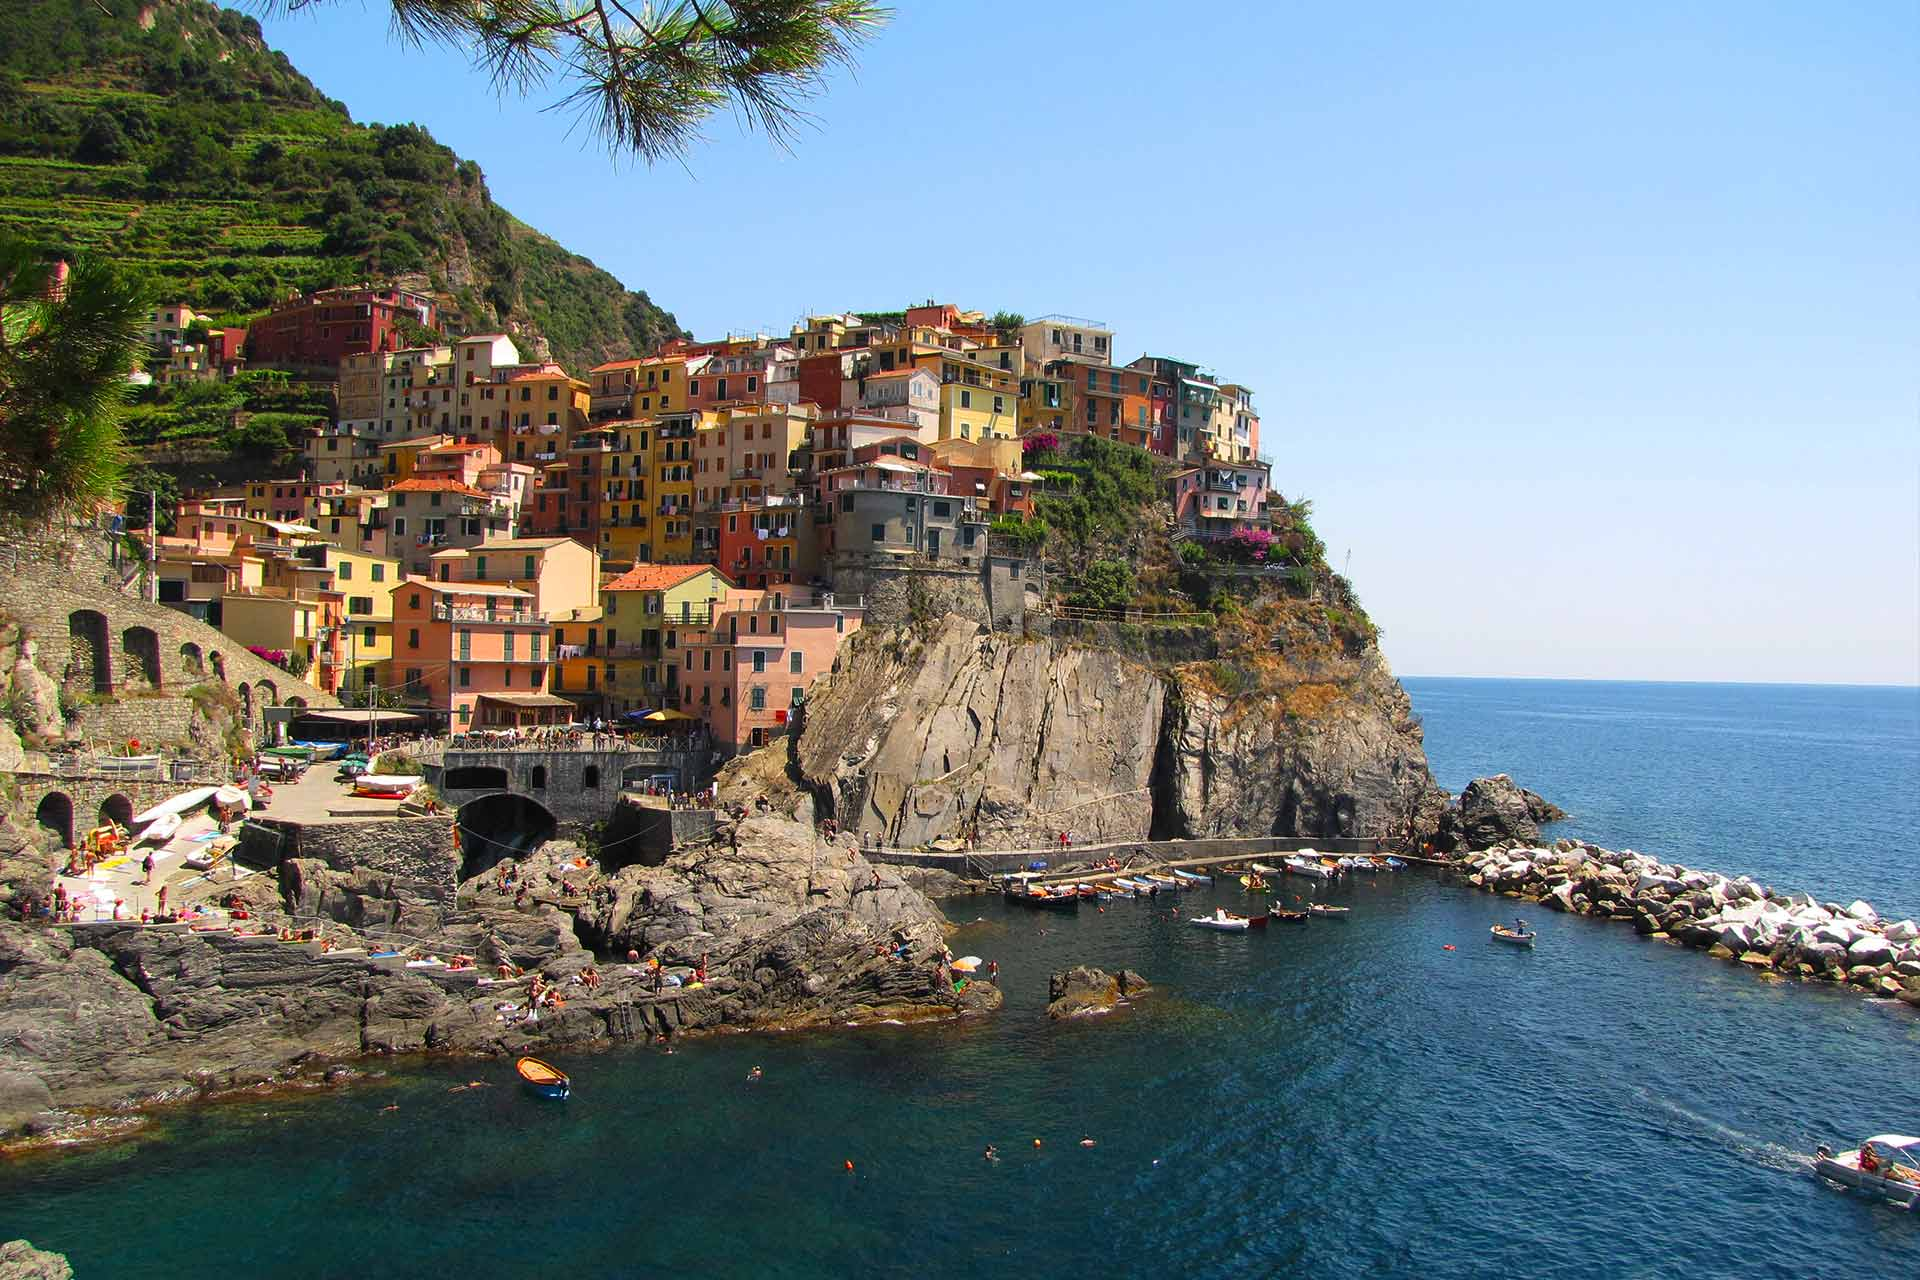 How long to stay in Cinque Terre?